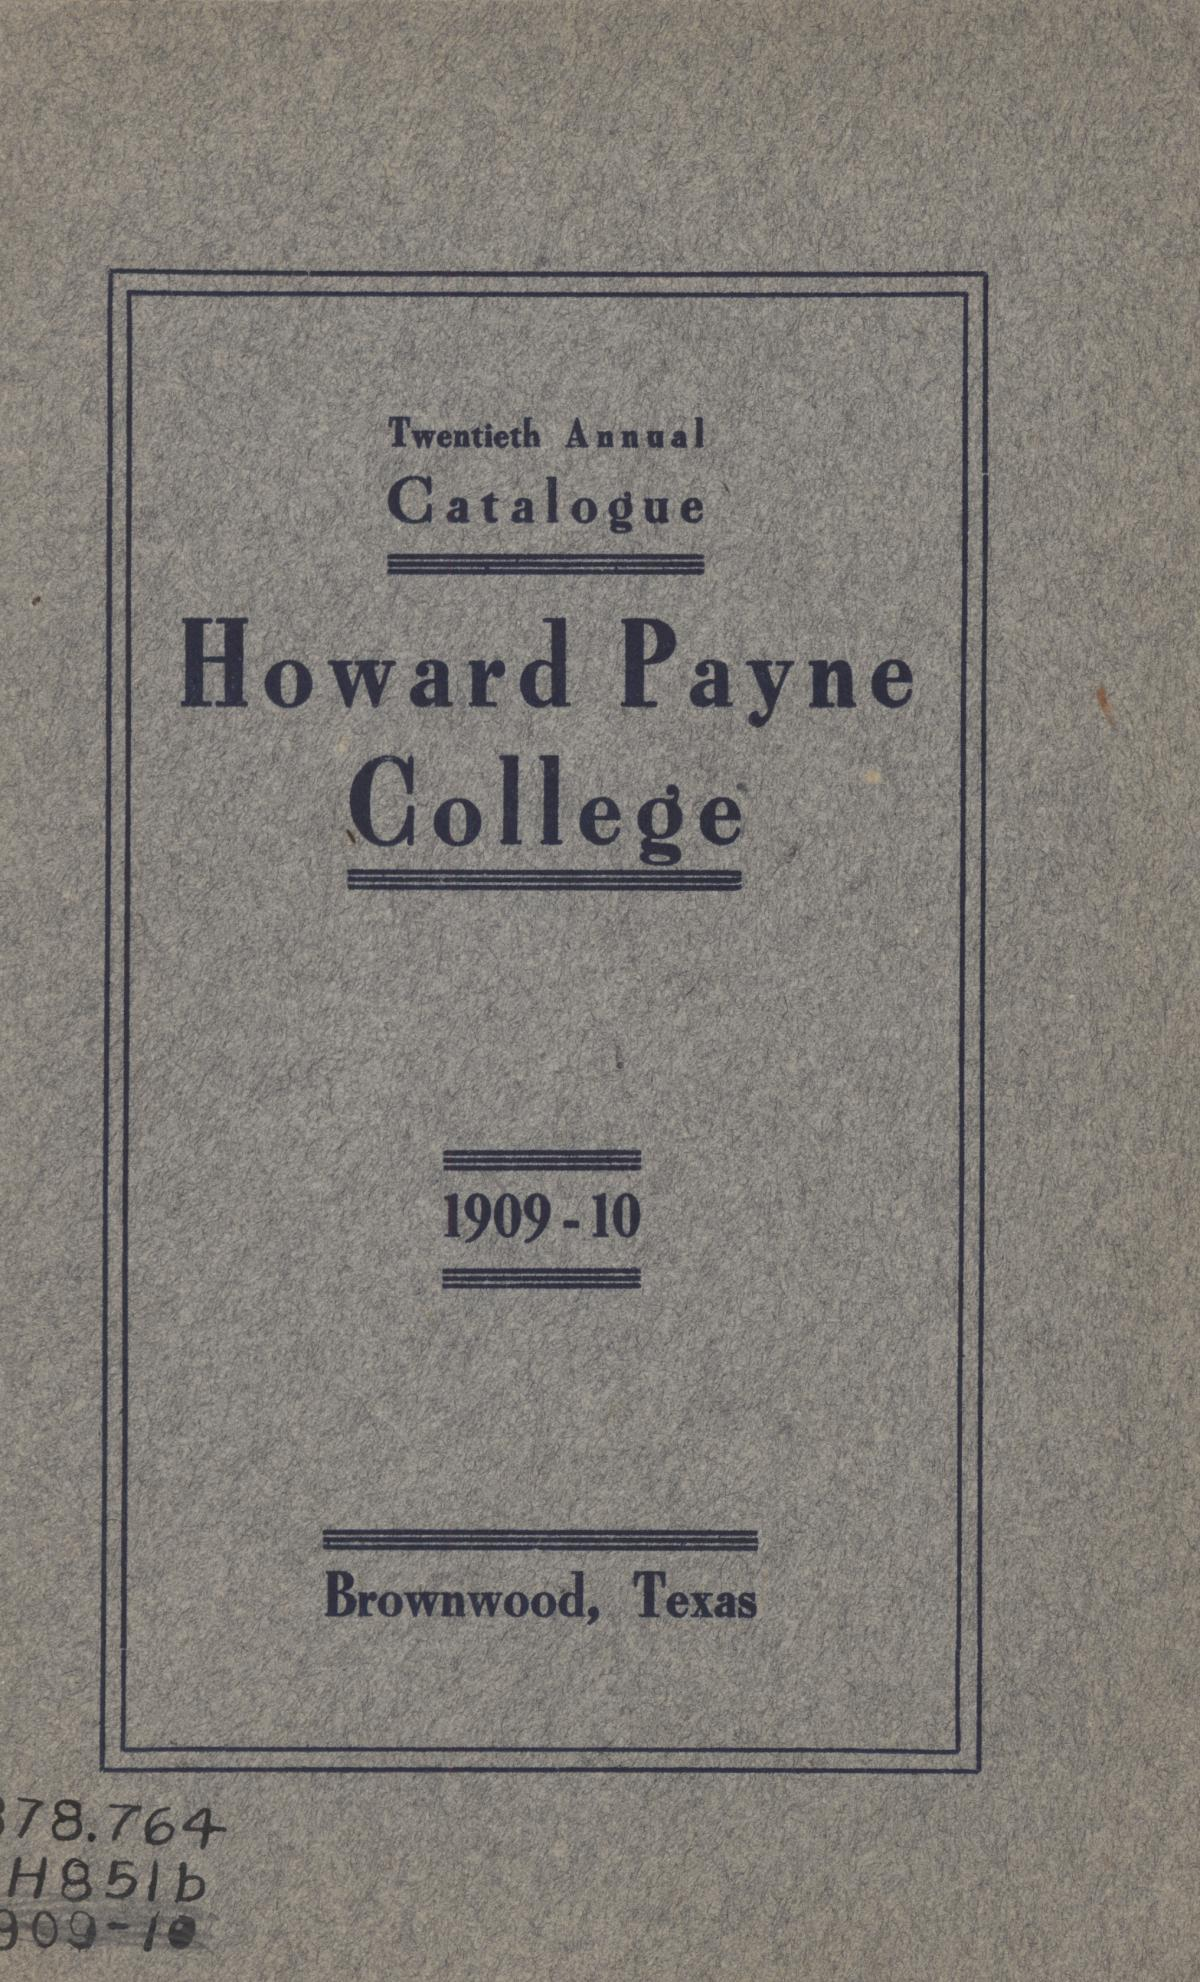 Catalogue of Howard Payne College, 1909-1910                                                                                                      Front Cover